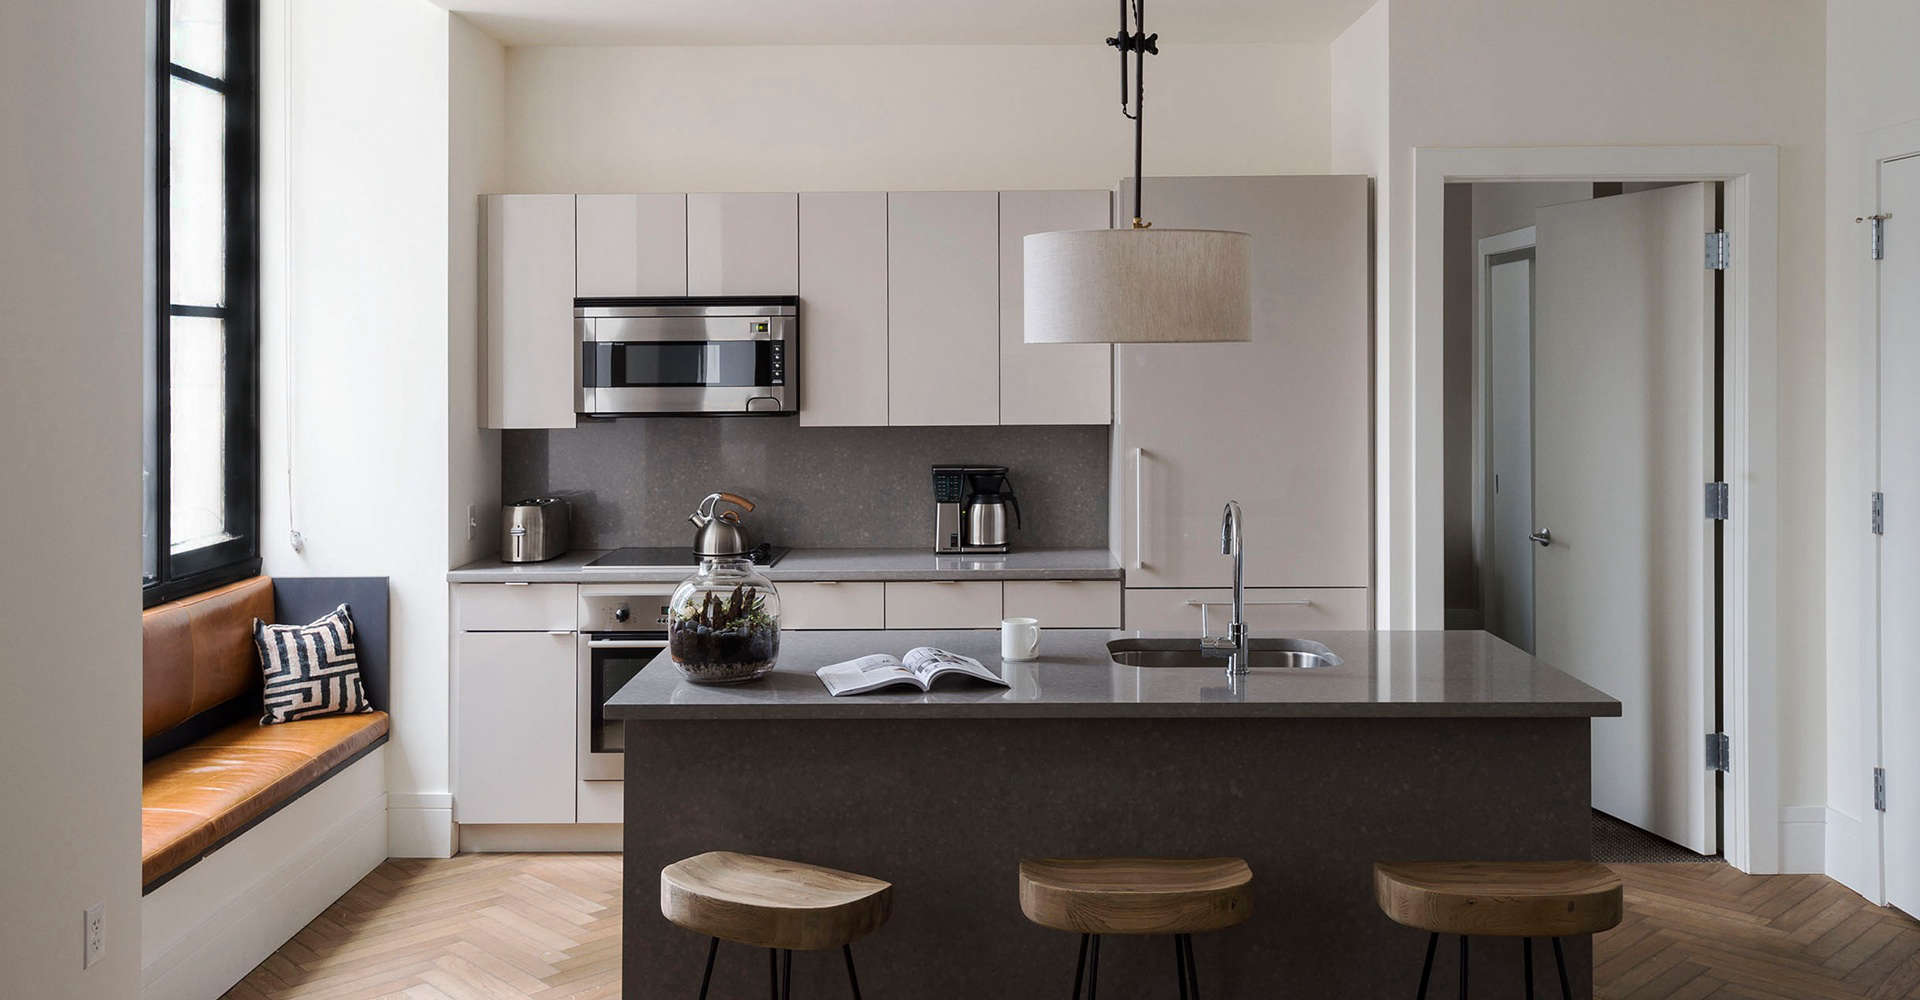 my roost kitchen penthouse remodelista 13